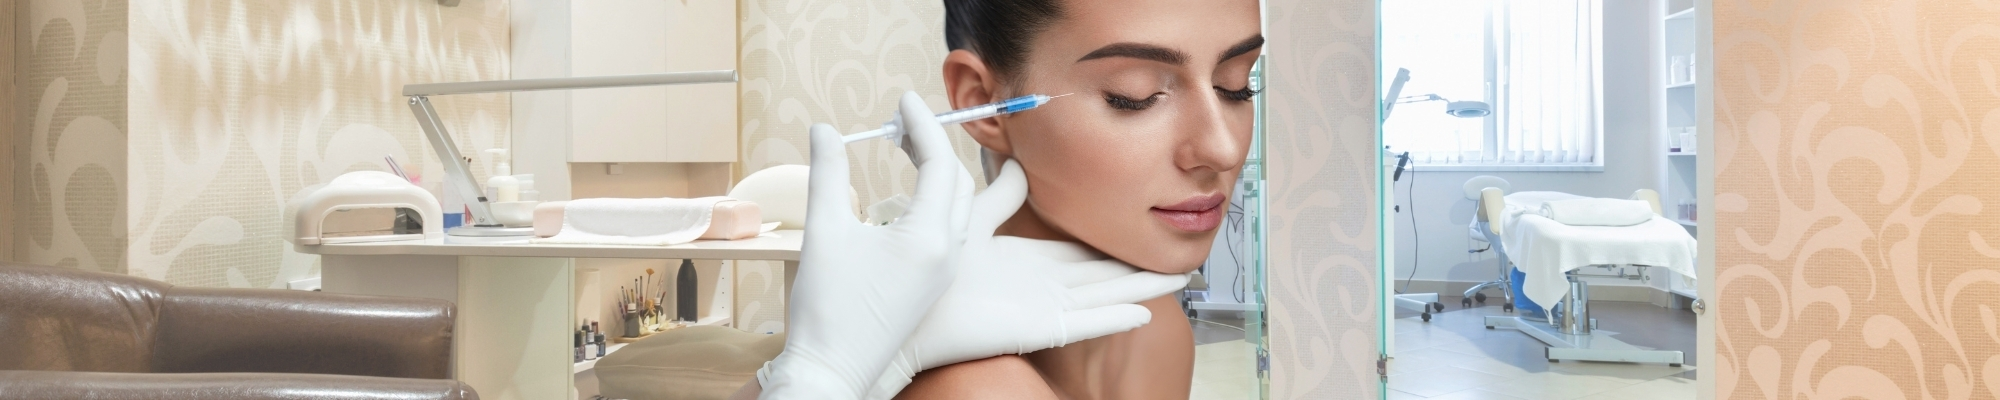 What is Medical Malpractice for Beauty Professionals?